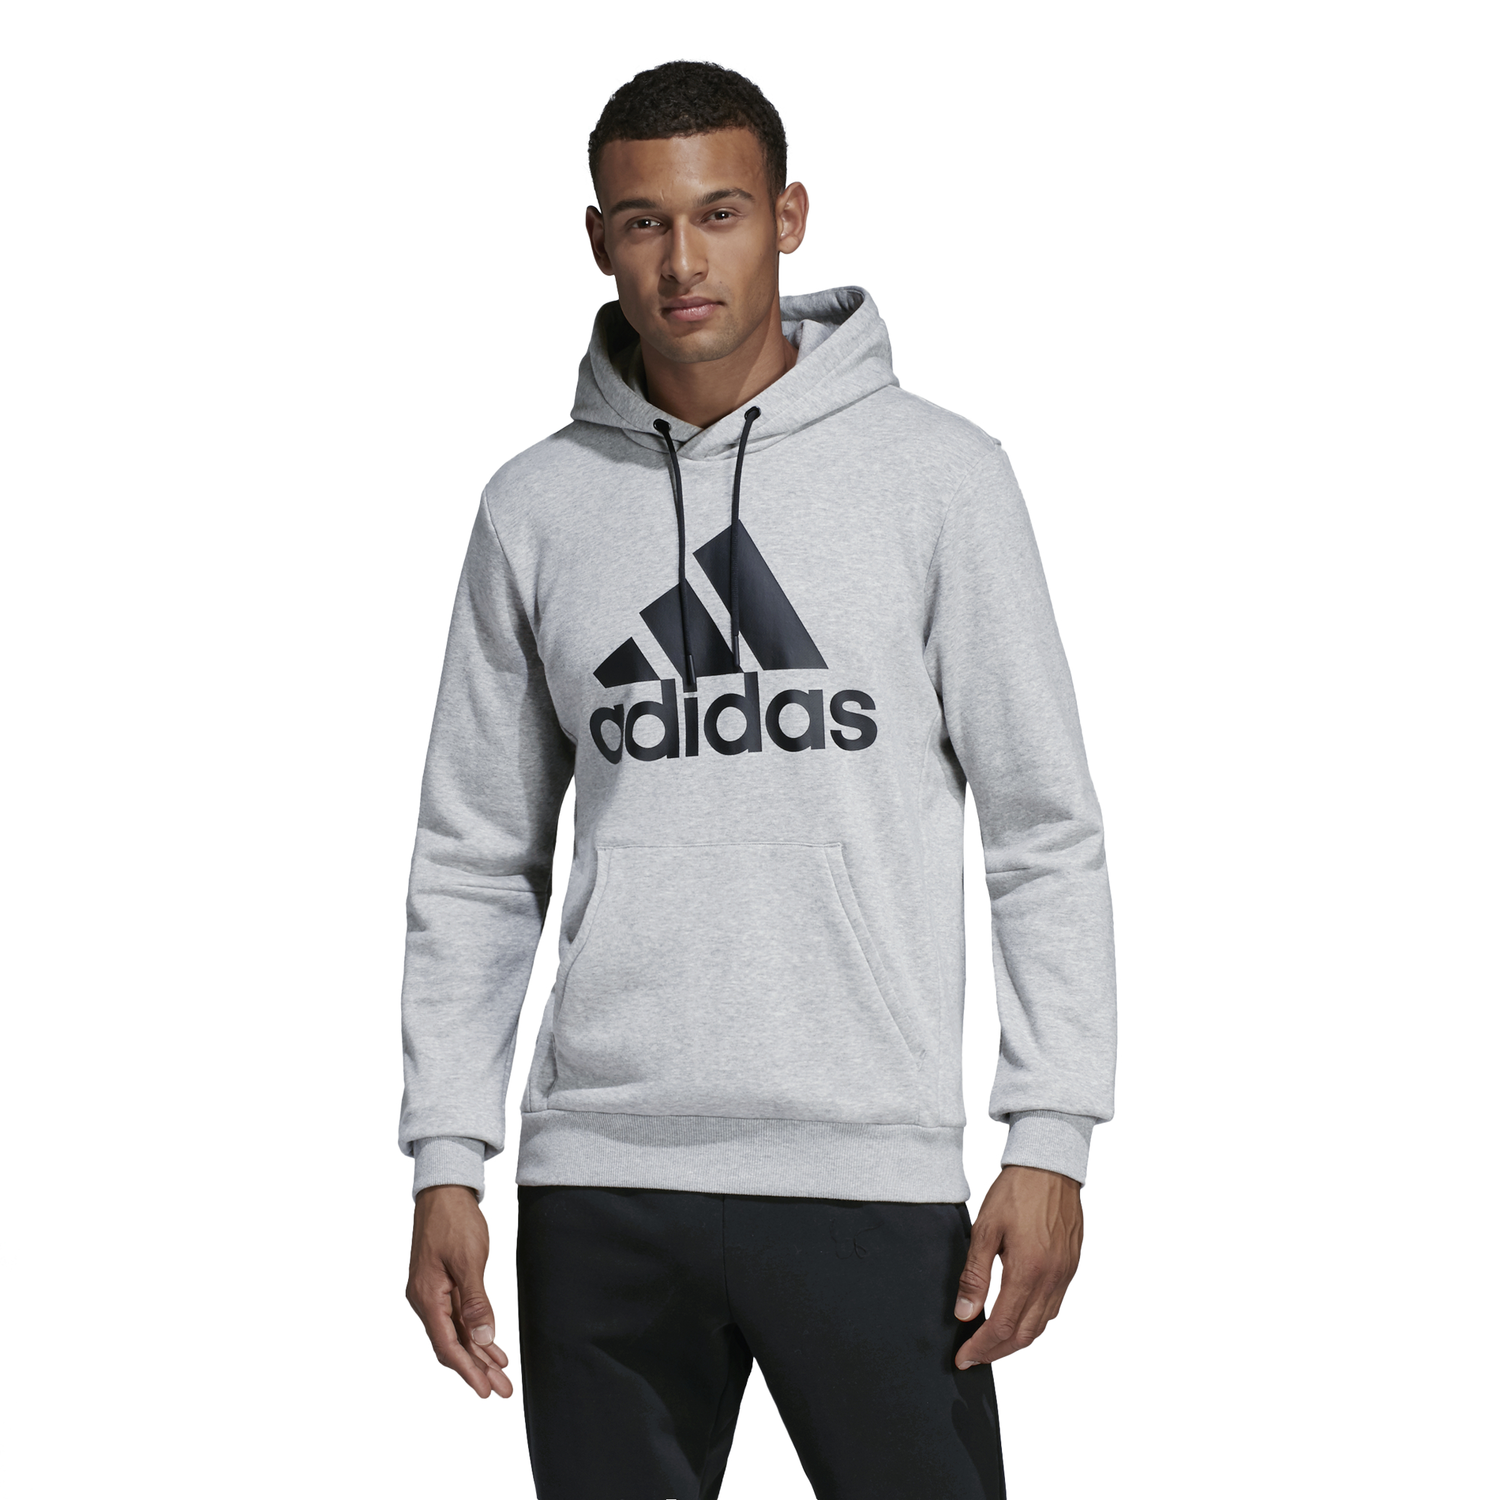 BLUZA MĘSKA ADIDAS MUST HAVES BADGE OF SPORT PULLOVER HOODIE FRENCH TERRY SZARA DT9947